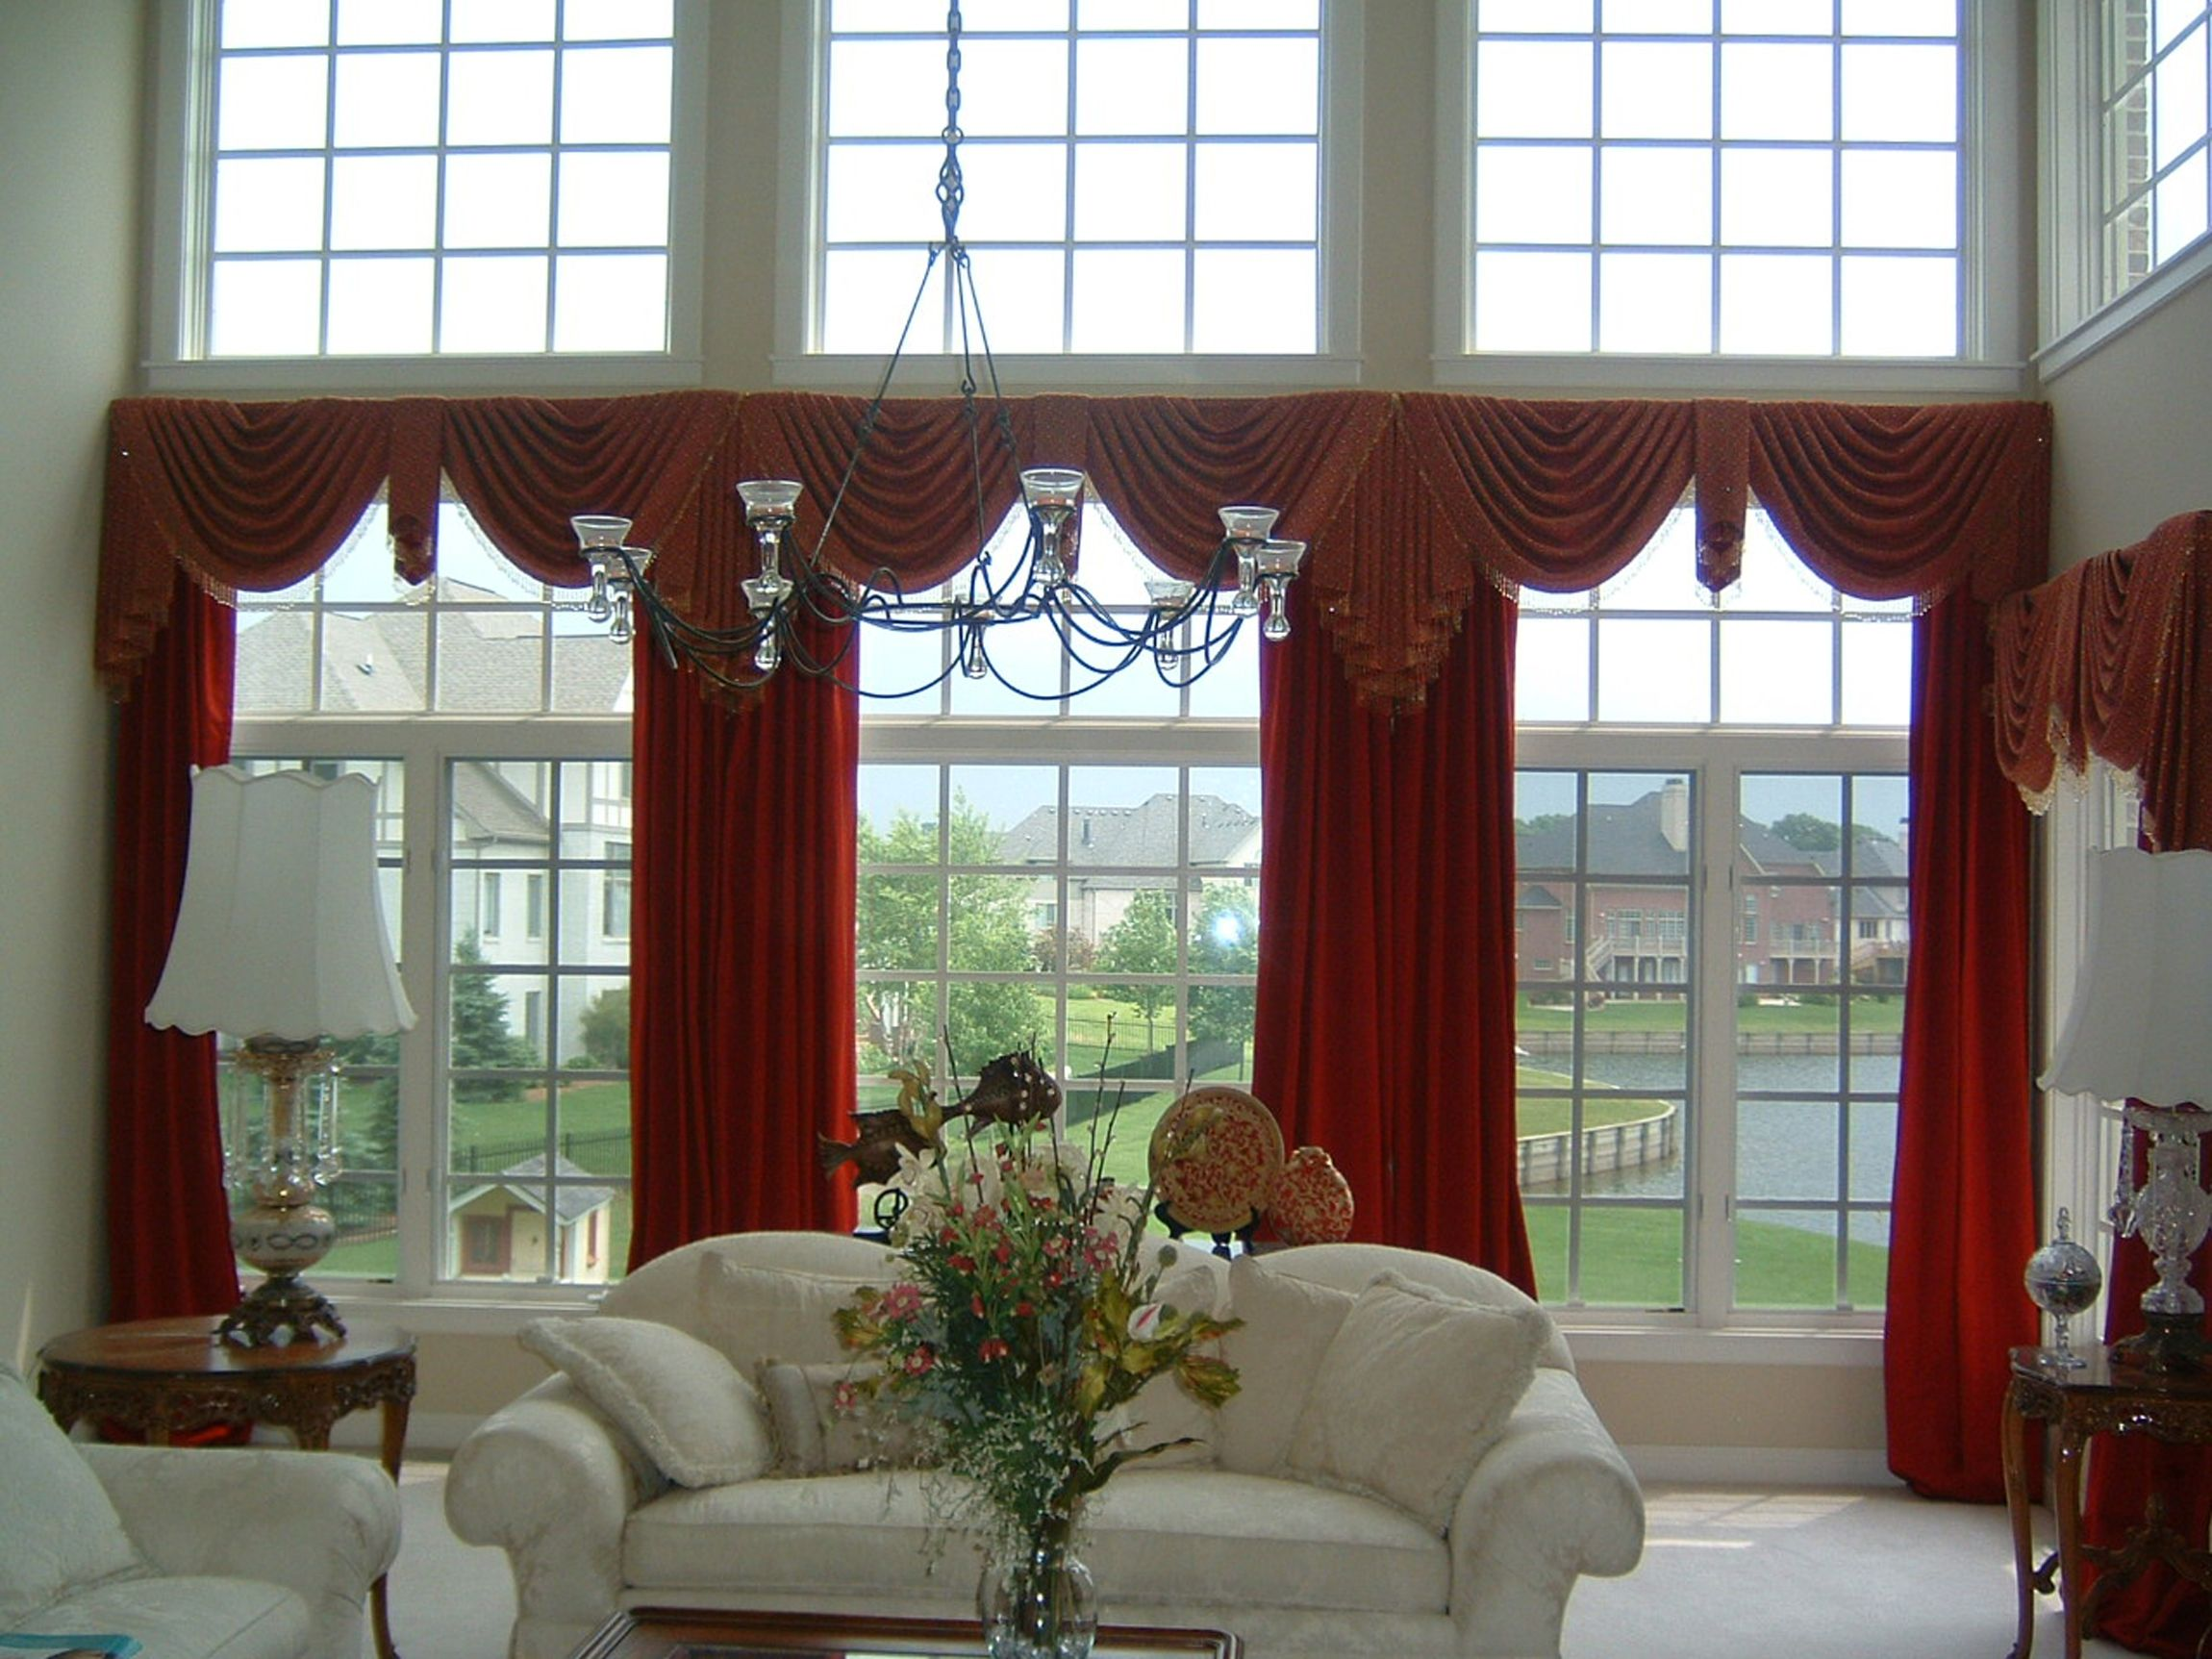 Astonishing Curtain Ideas For Large Windows Design With Bow Wi